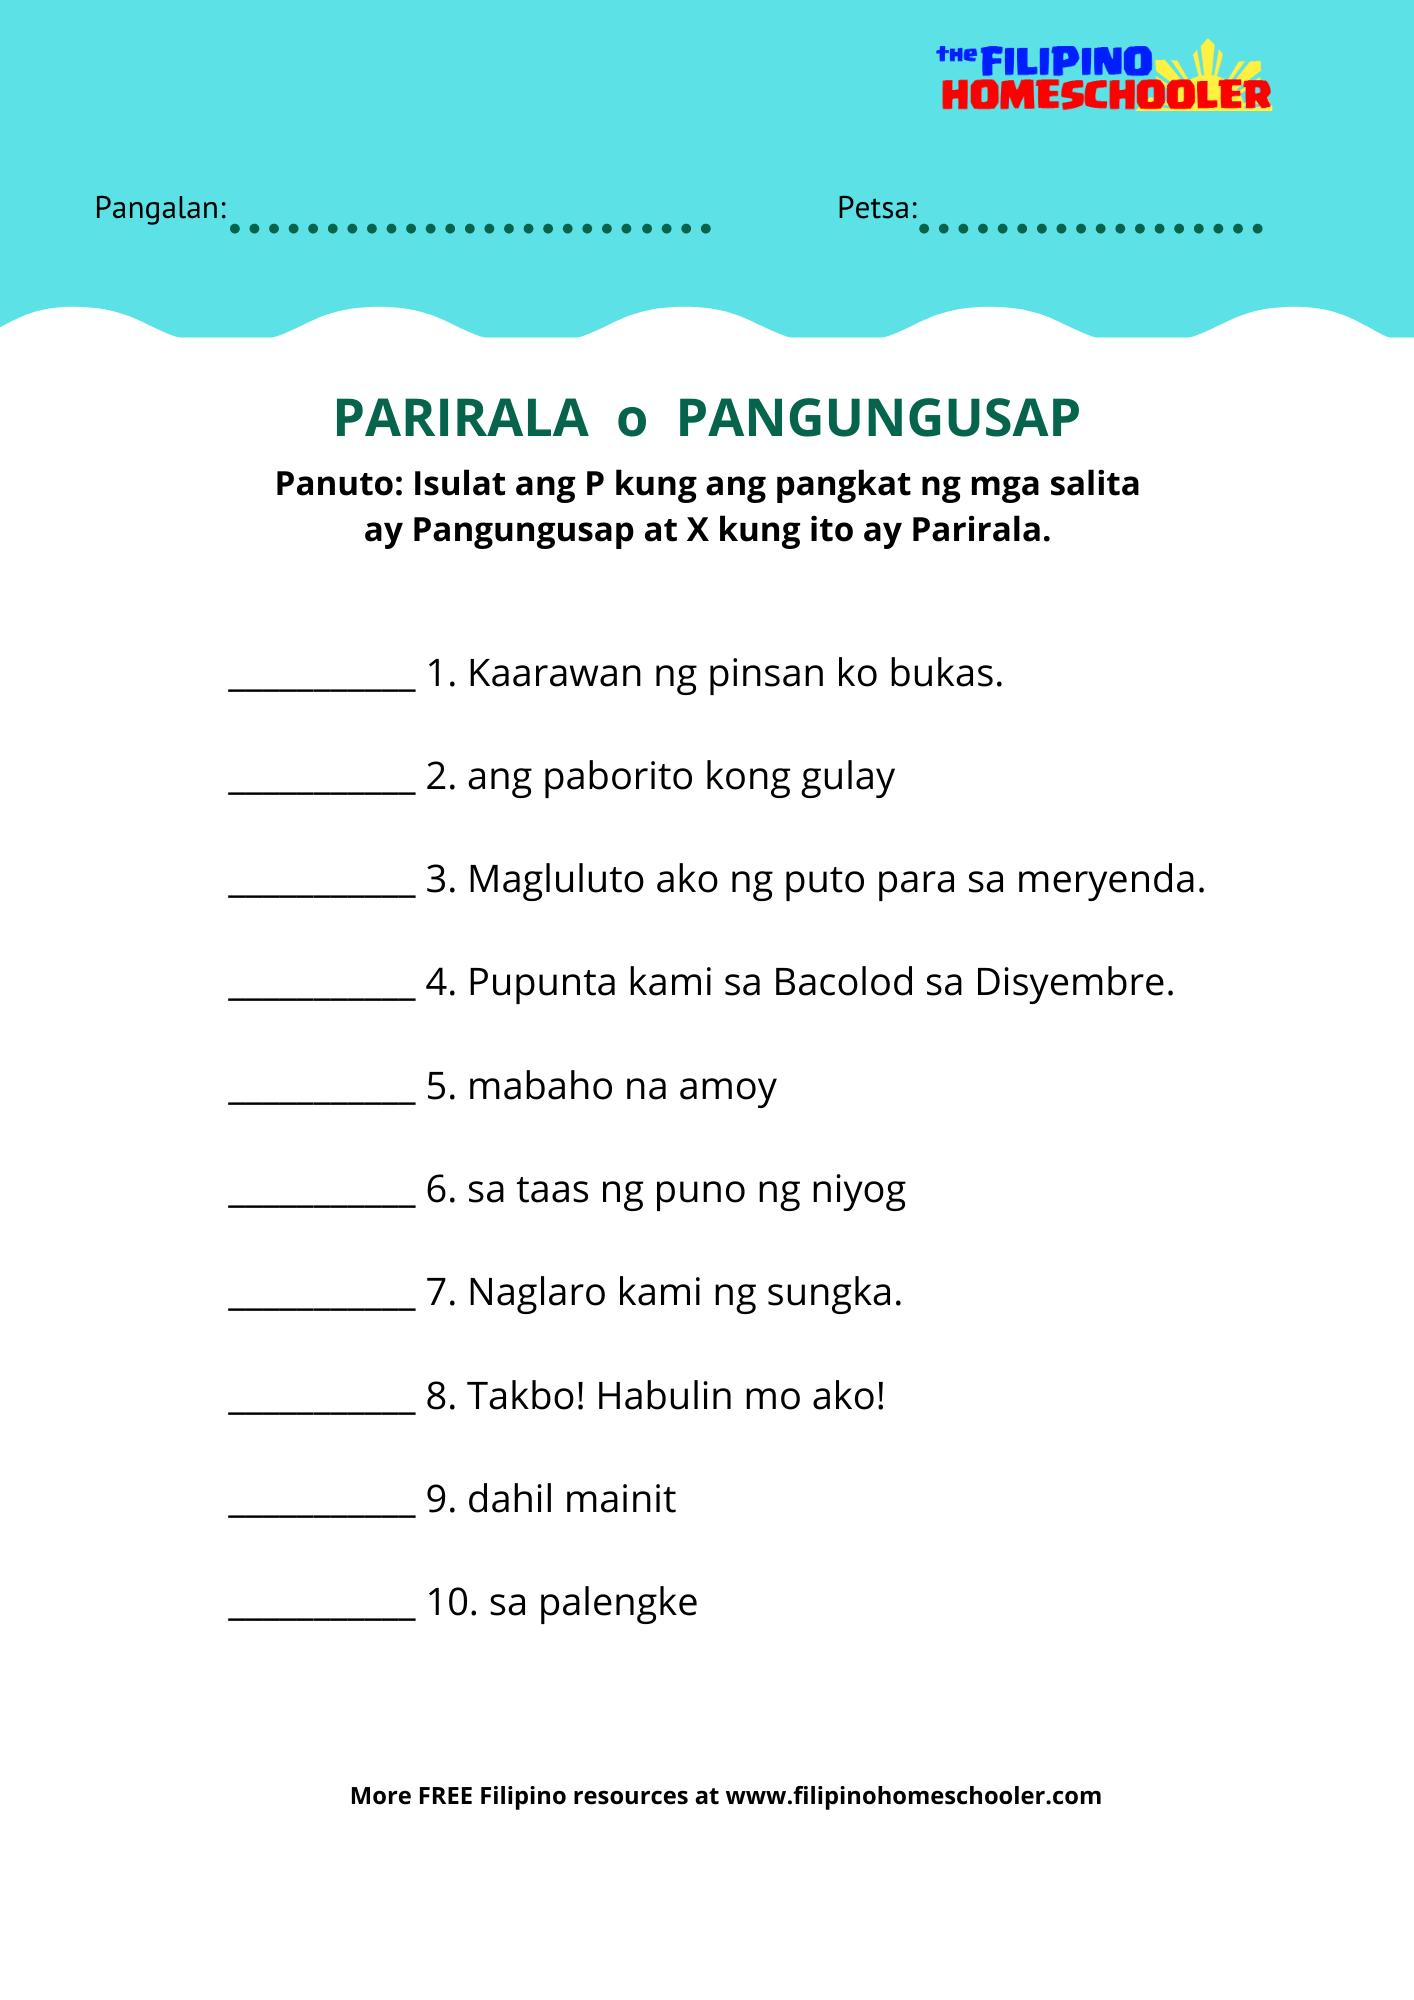 hight resolution of Uri Ng Panghalip Worksheet   Printable Worksheets and Activities for  Teachers